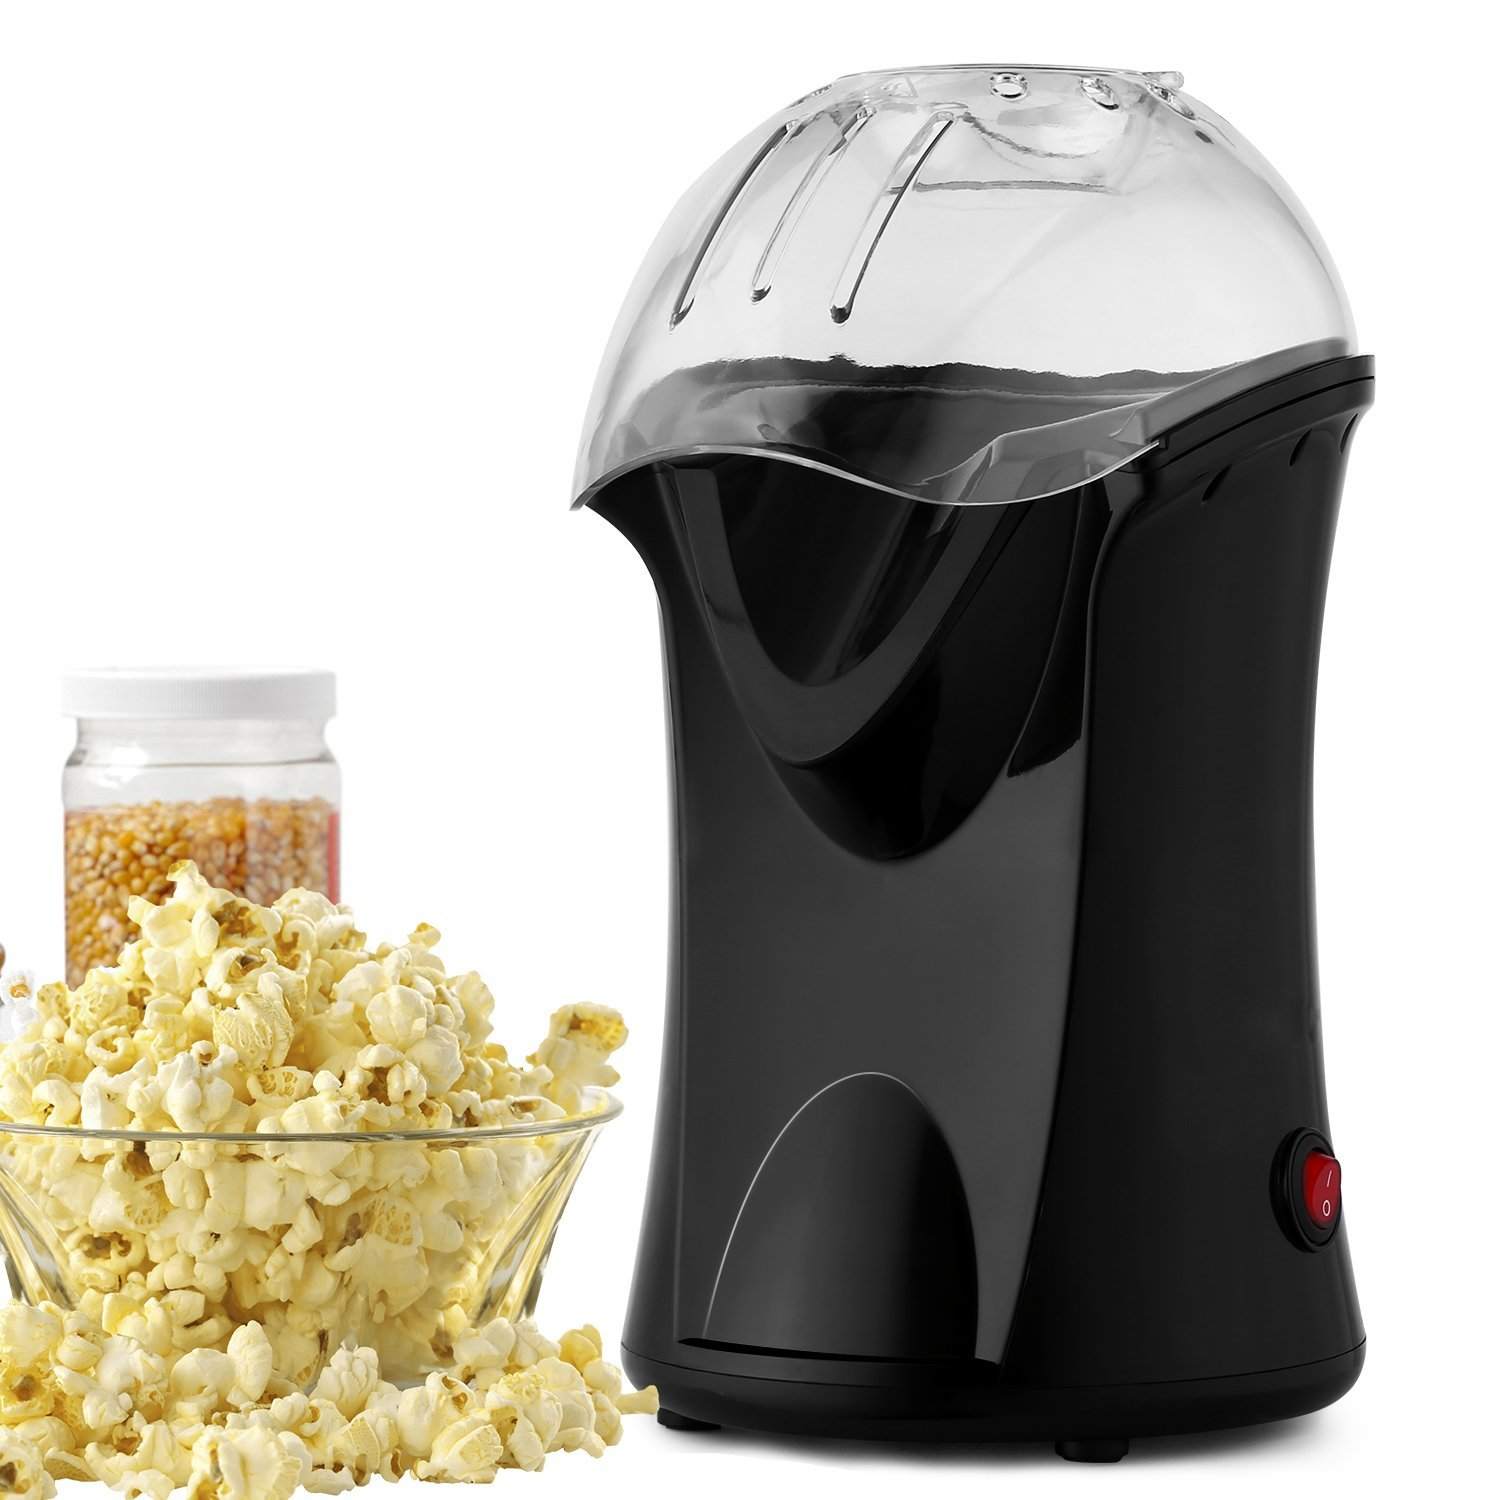 Acazon Popcorn Popper Hot Air Popcorn Machine/Popcorn Maker with Measuring Cup Popcorn Healthy Machine No Oil Needed (US STOCK)